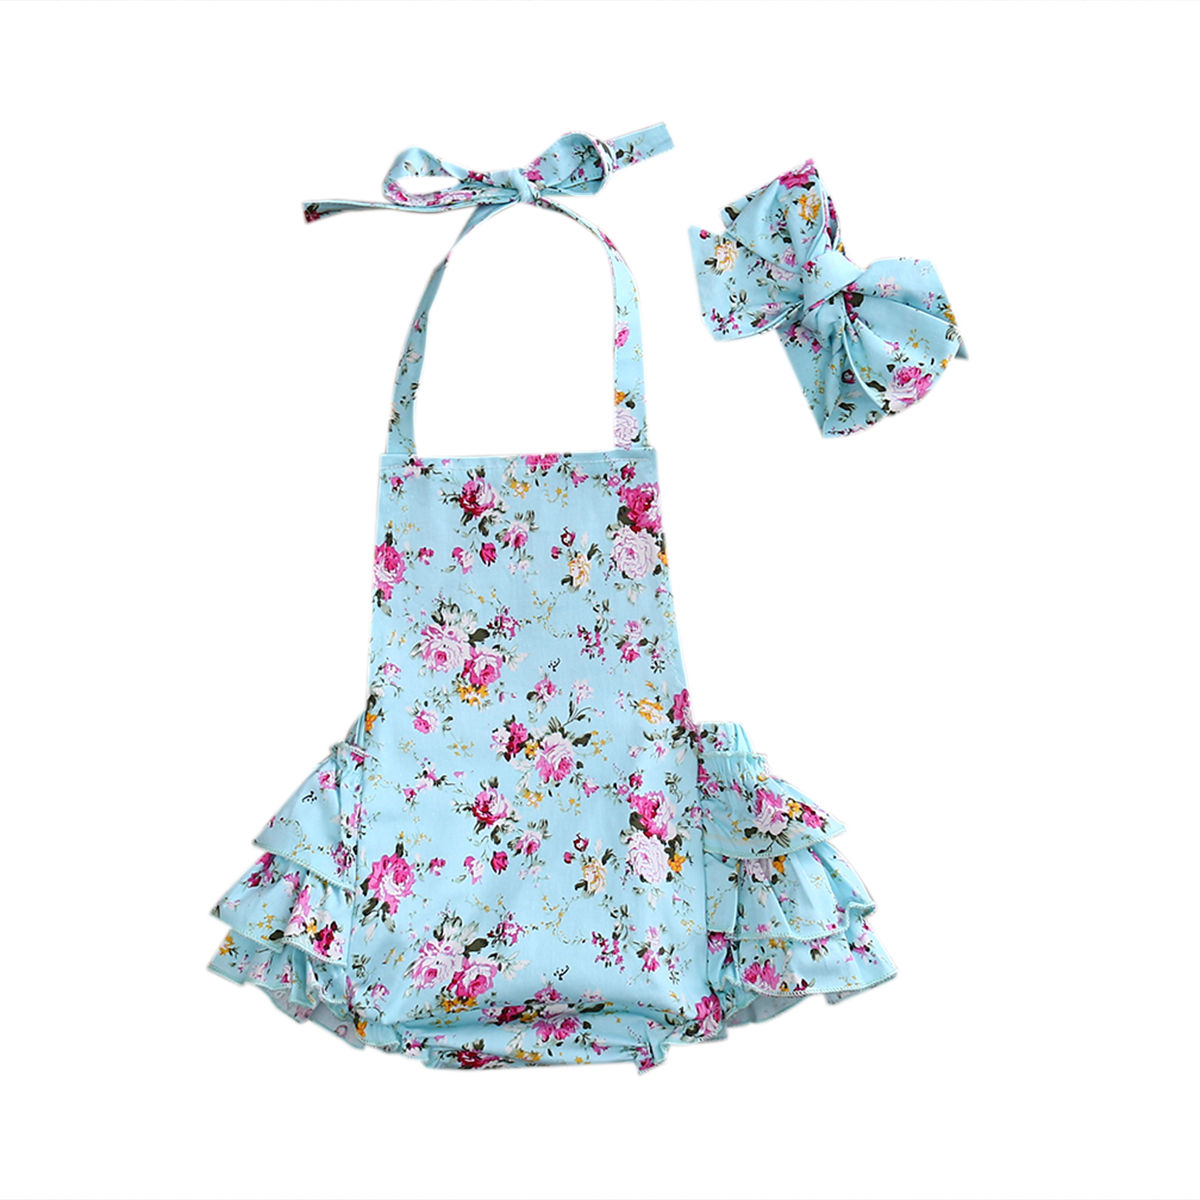 Summer Newborn Infant Baby Girls Floral Tiered Romper Jumpsuit Outfit Sunsuit Playsuit Belt Cotton Clothes summer newborn infant baby girl romper sleeveles cotton floral romper jumpsuit outfit playsuit clothes